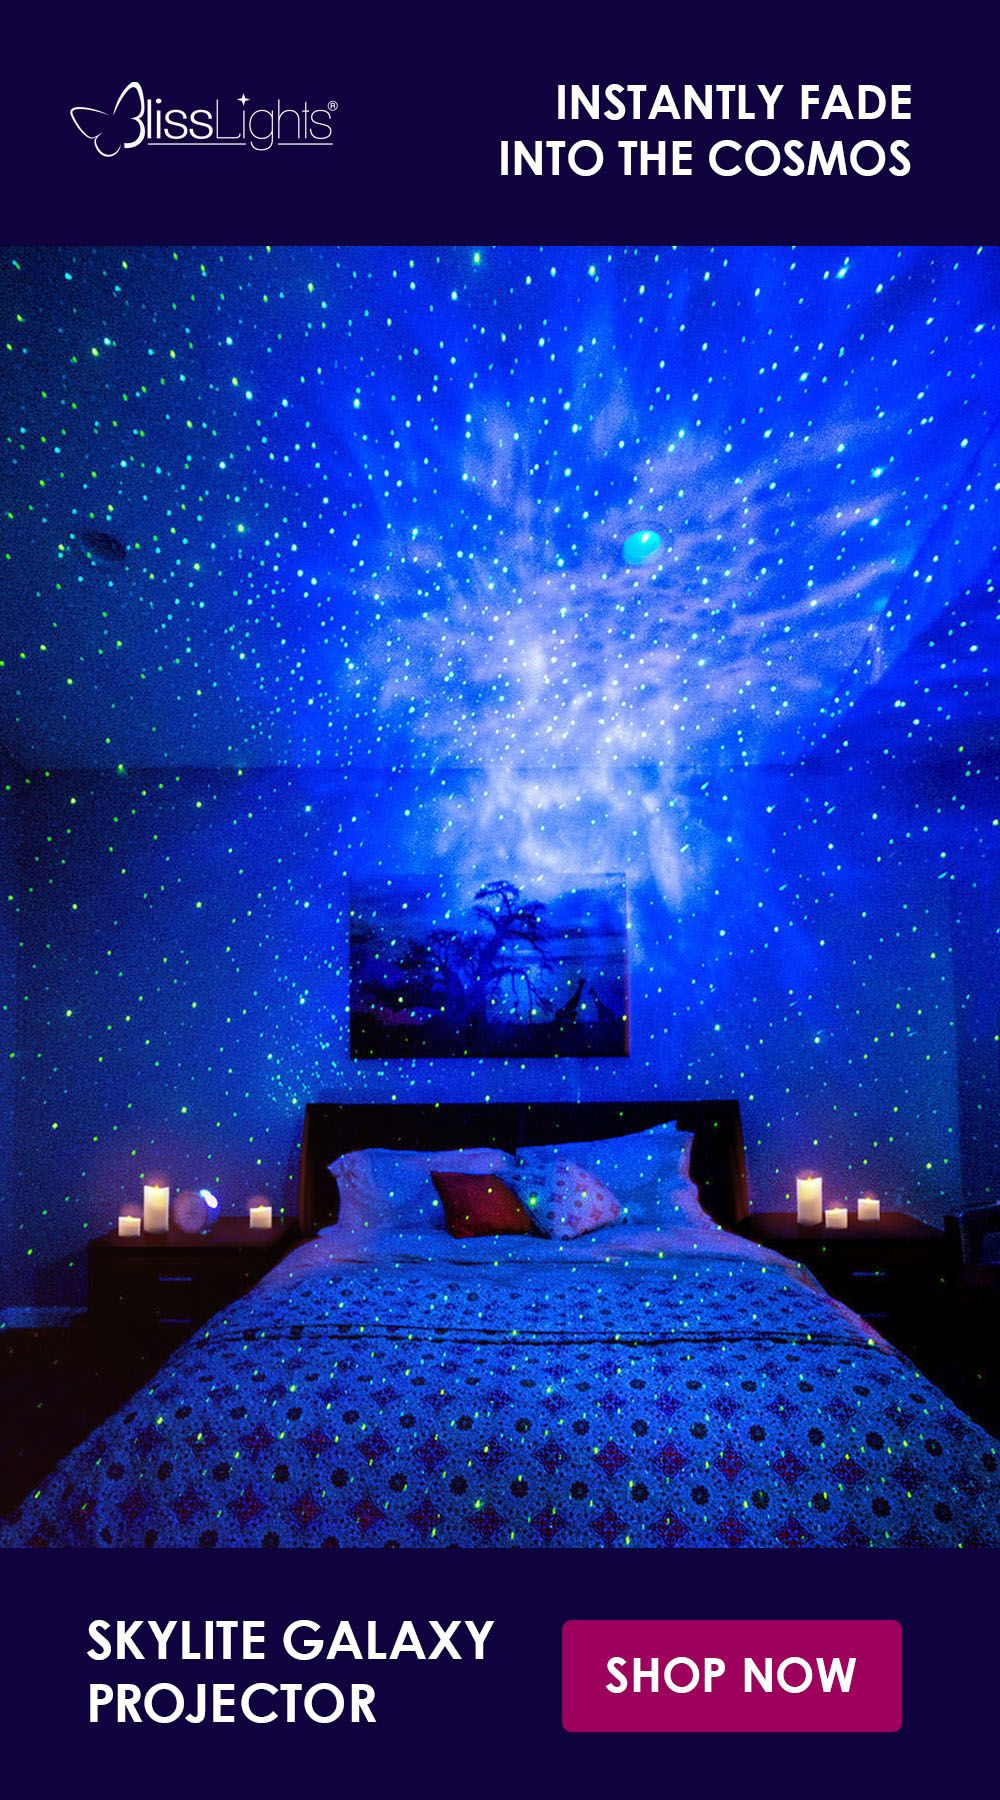 The Skylite Instantly Projects A Field Of Drifting Stars Against A Transforming Blue Nebula Cloud Enhance Your Home Theater Ex Room Decor Bedroom Dream Rooms